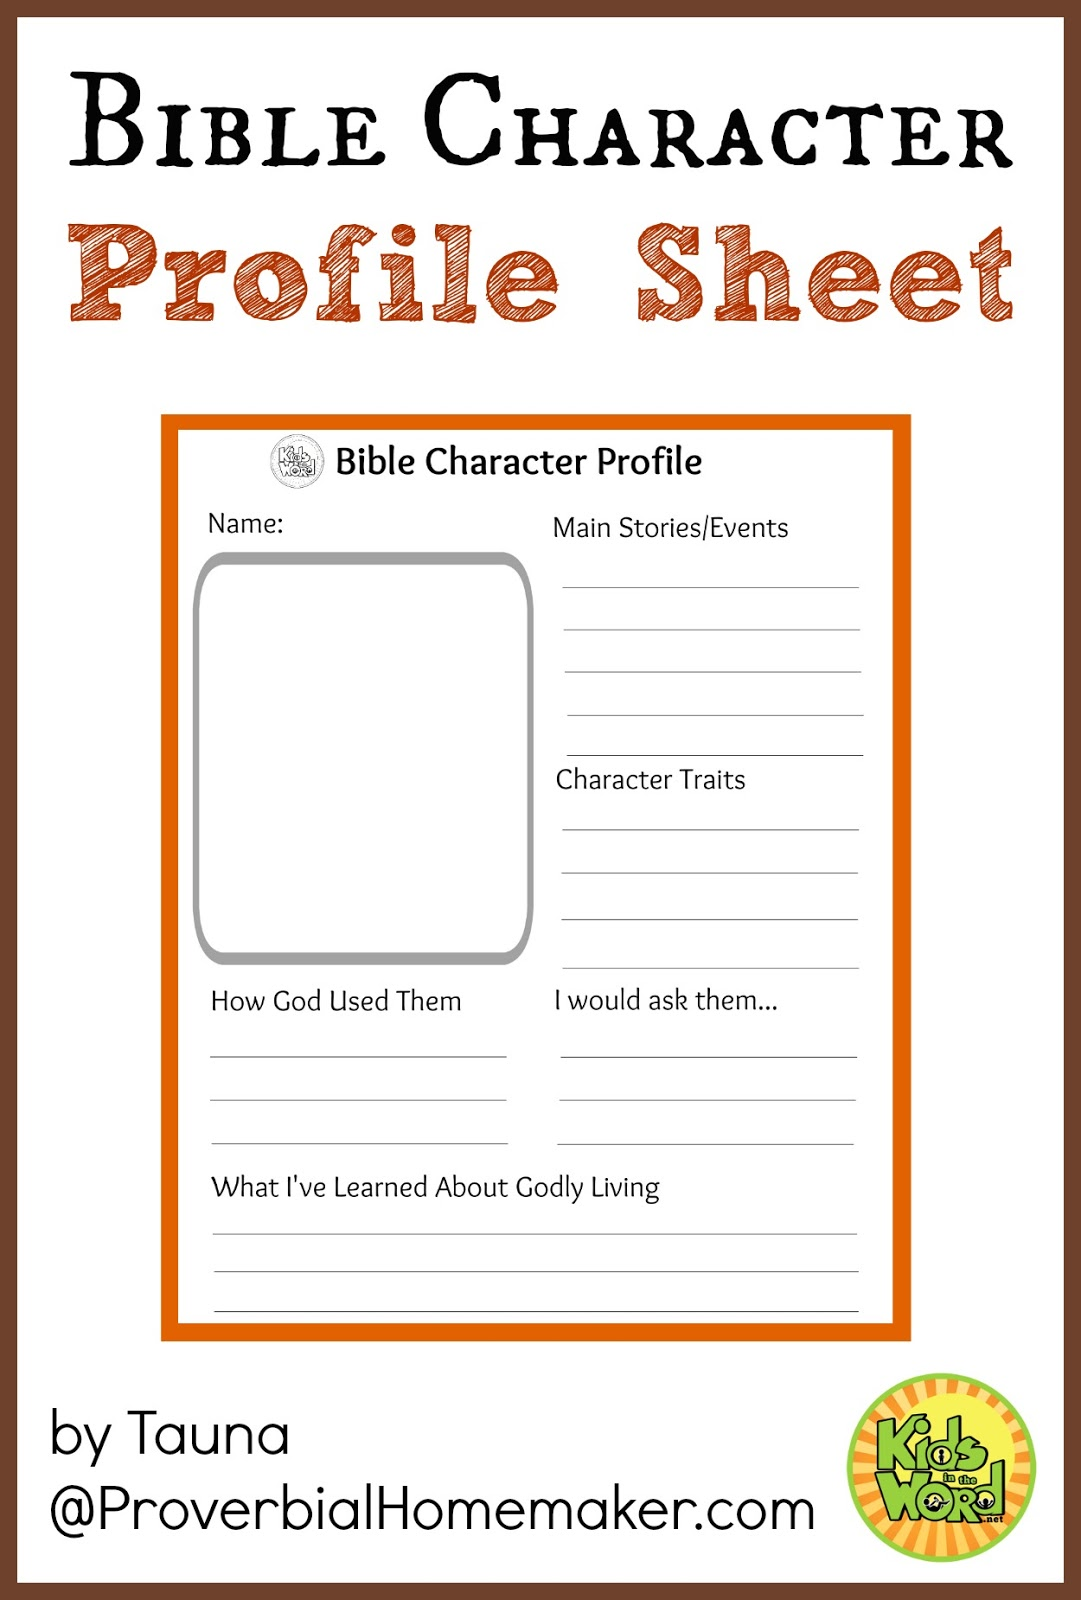 Budget Friendly Homeschooling Bible Character Profile Sheets